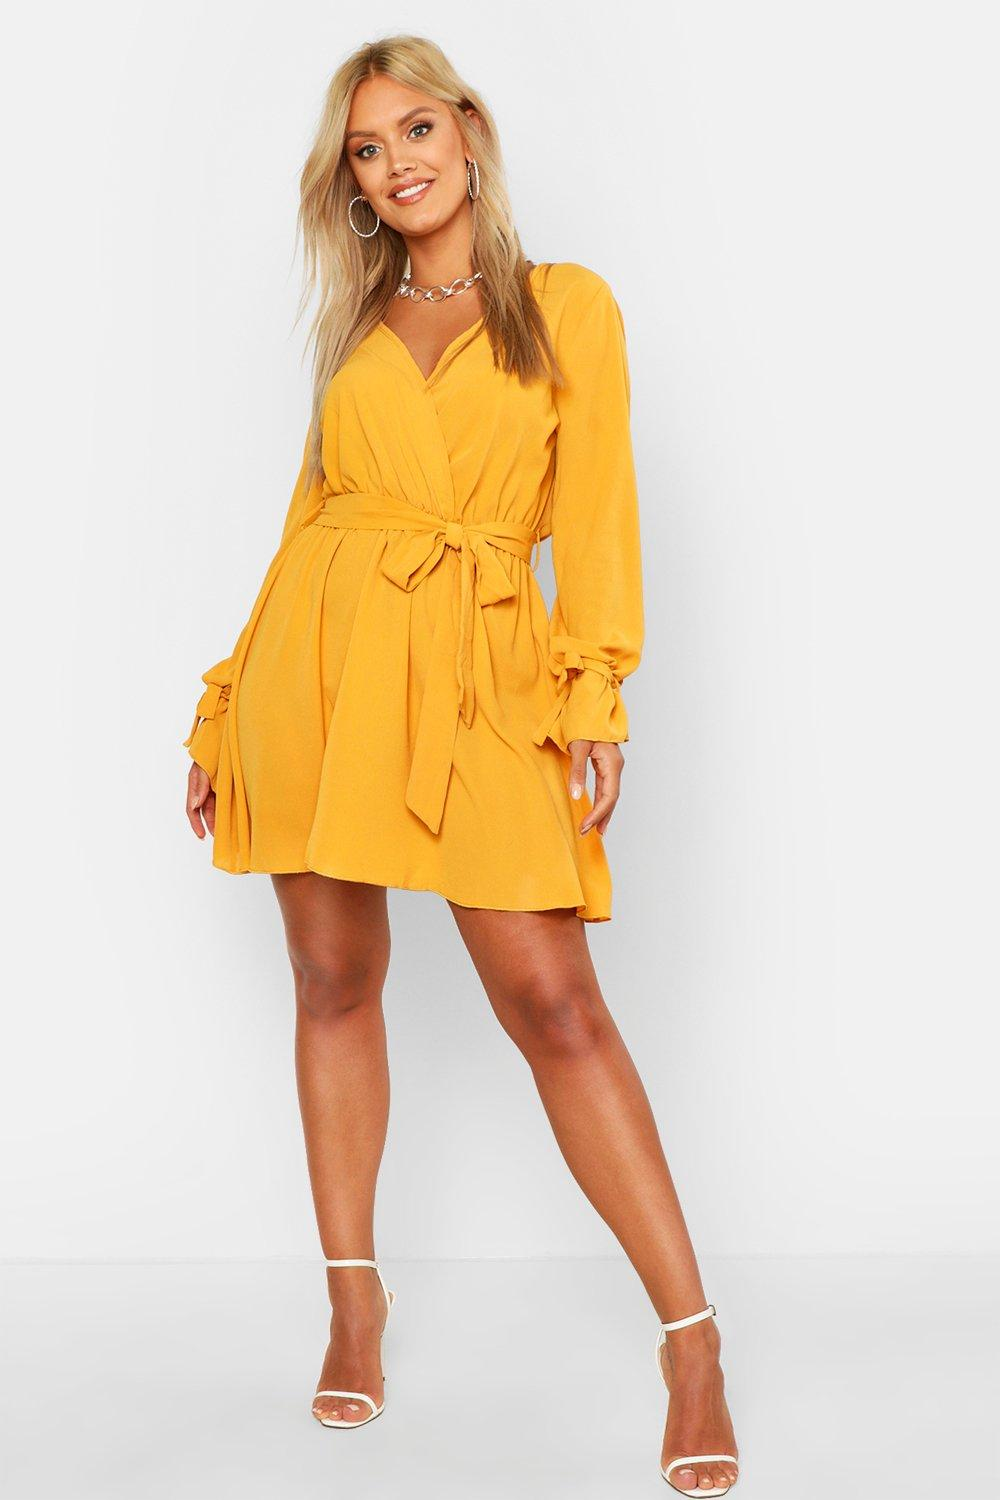 boohoo Womens Plus Wrap Tie Waist Skater Dress - Yellow - 20, Yellow